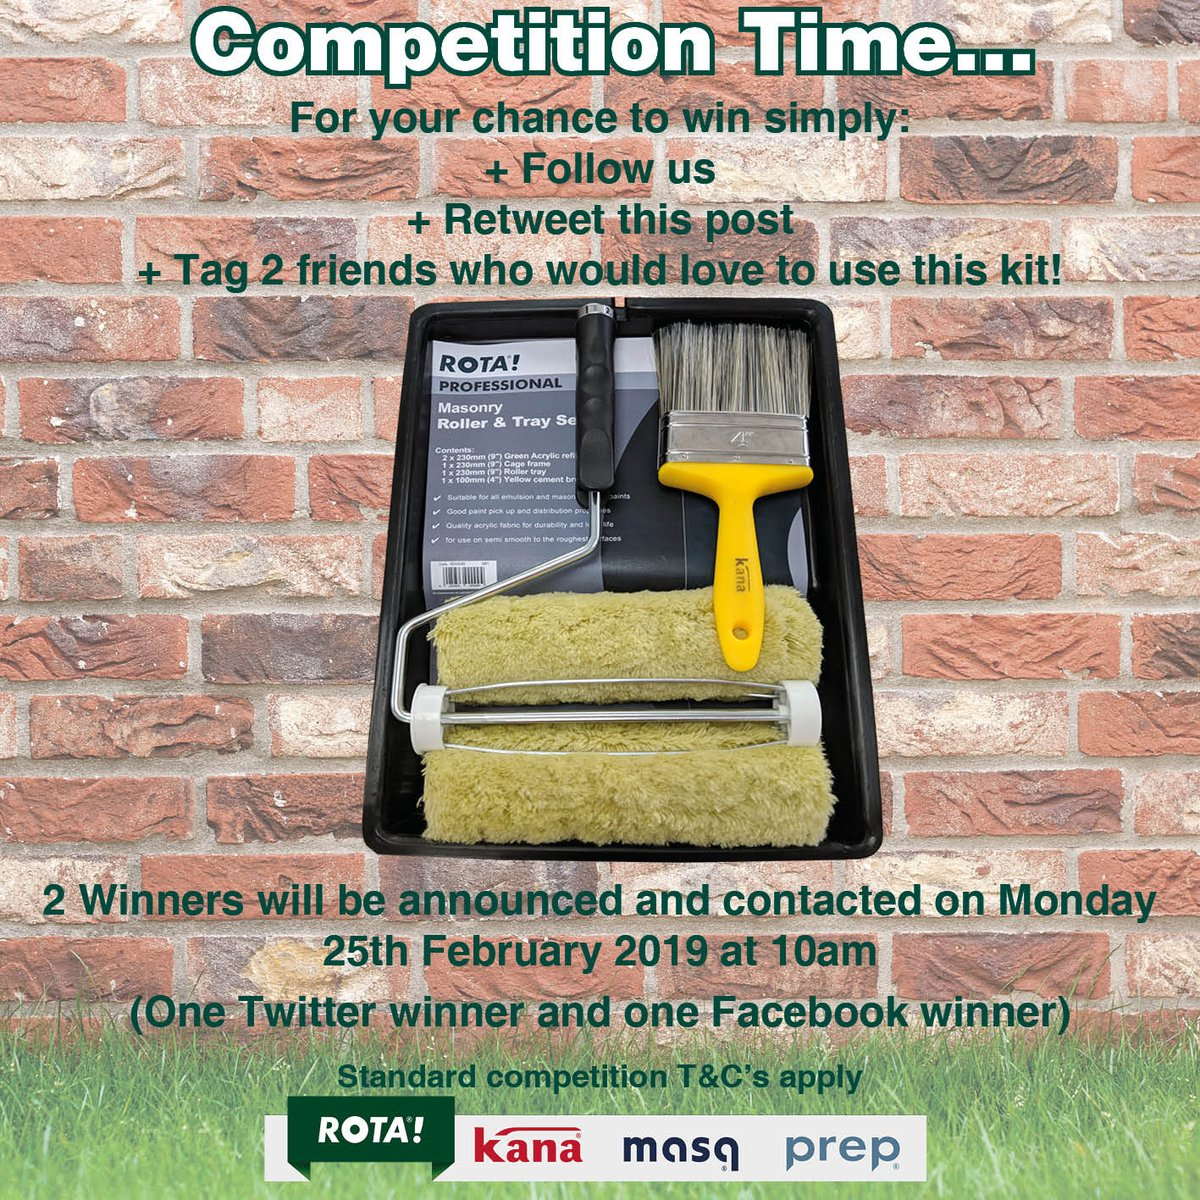 For your chance to win simply follow us, retweet this post and tag 2 friends who would love to use this masonry kit! 2 Winners will be announced and contacted on Monday 25th February 2019 at 10am (One Twitter winner and one Facebook winner) Good luck! #Competitiontime #masonry<br>http://pic.twitter.com/Ox6HYgUtqT